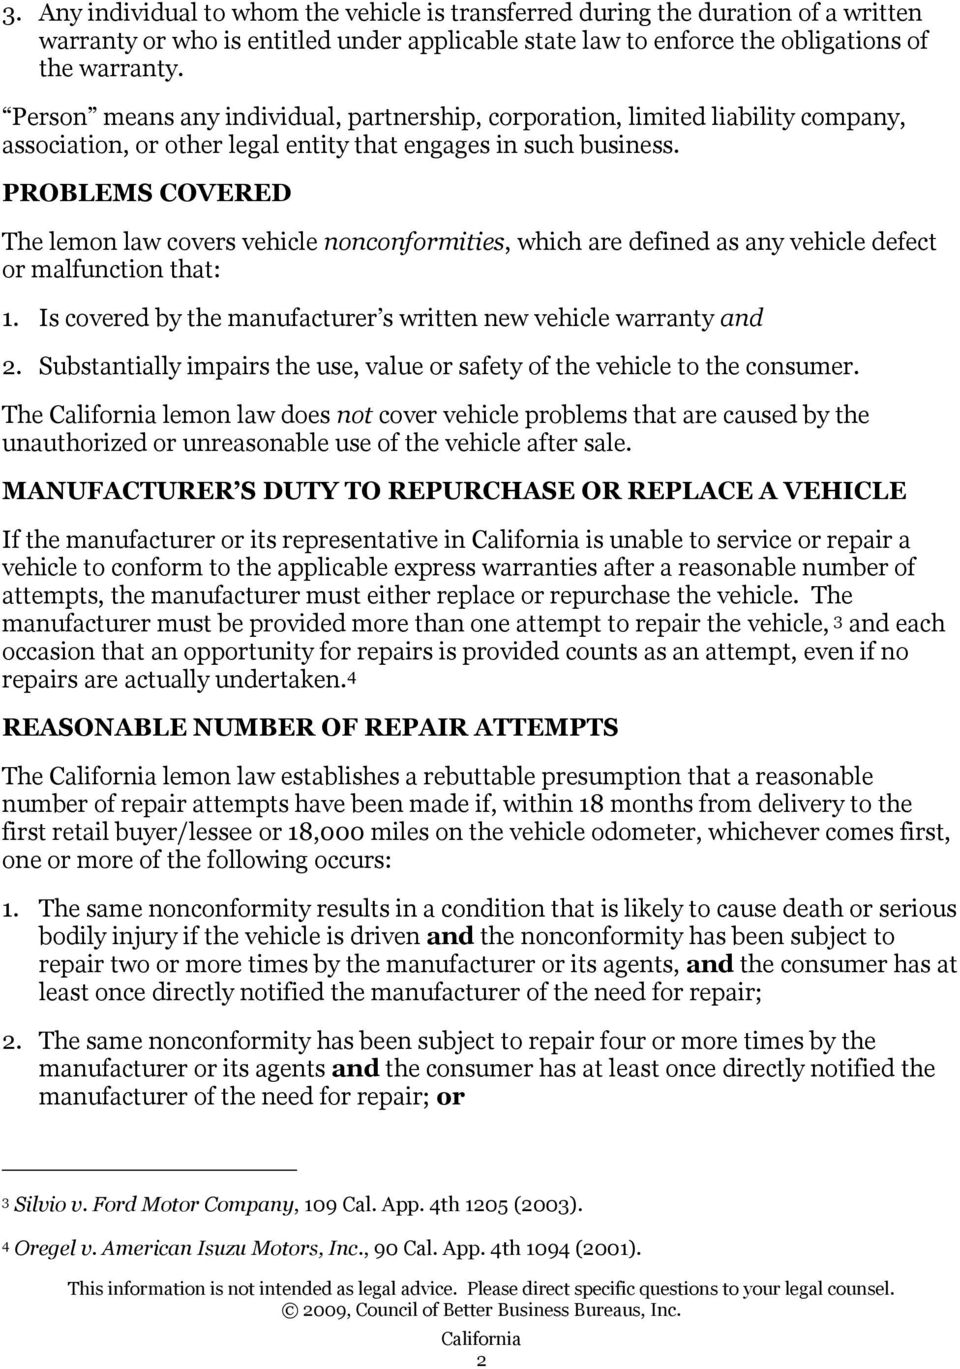 standards of the california lemon law song-beverly consumer warranty